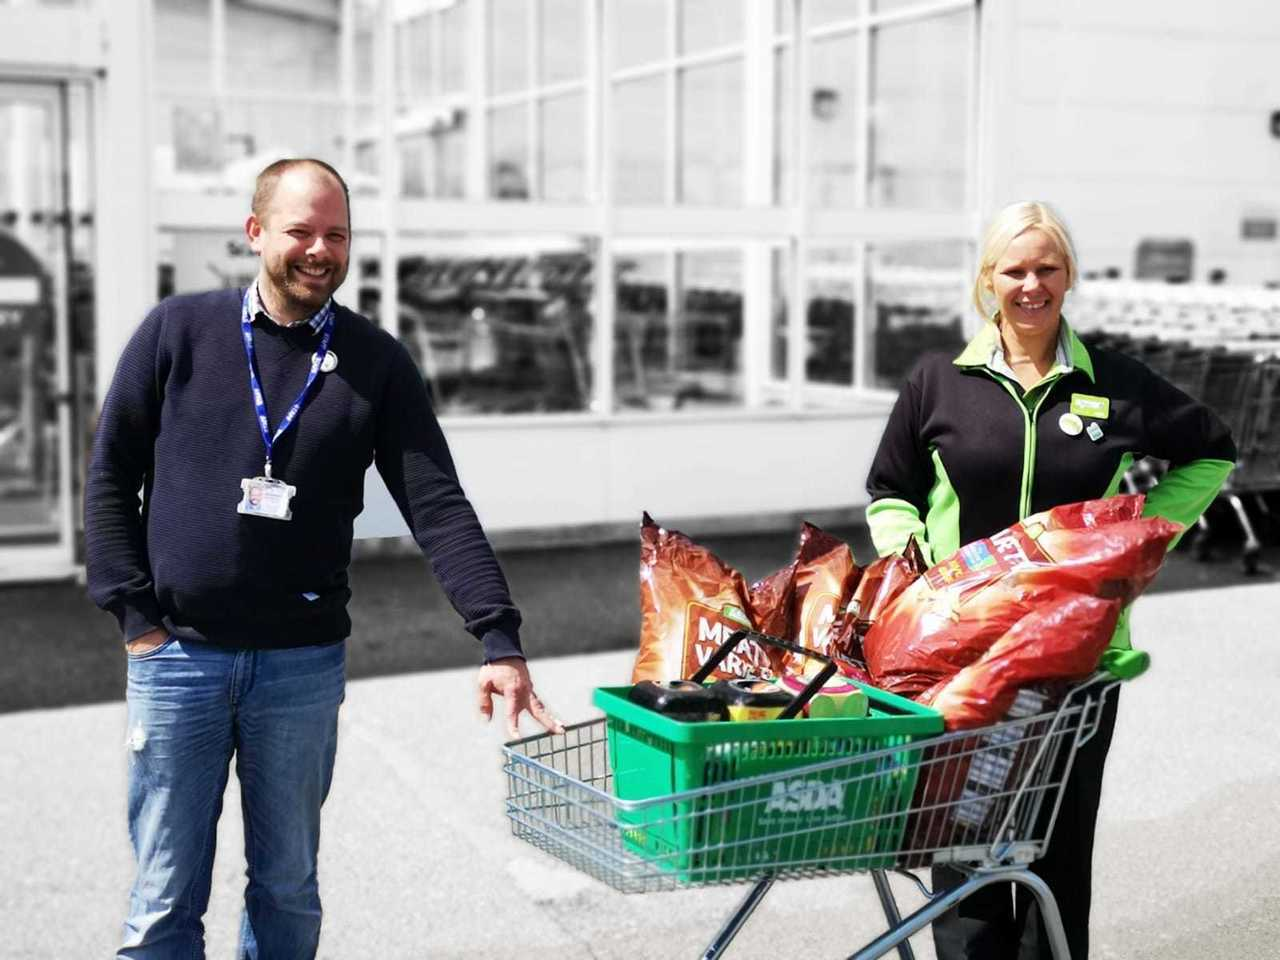 Donation of treats to the homeless | Asda Derby